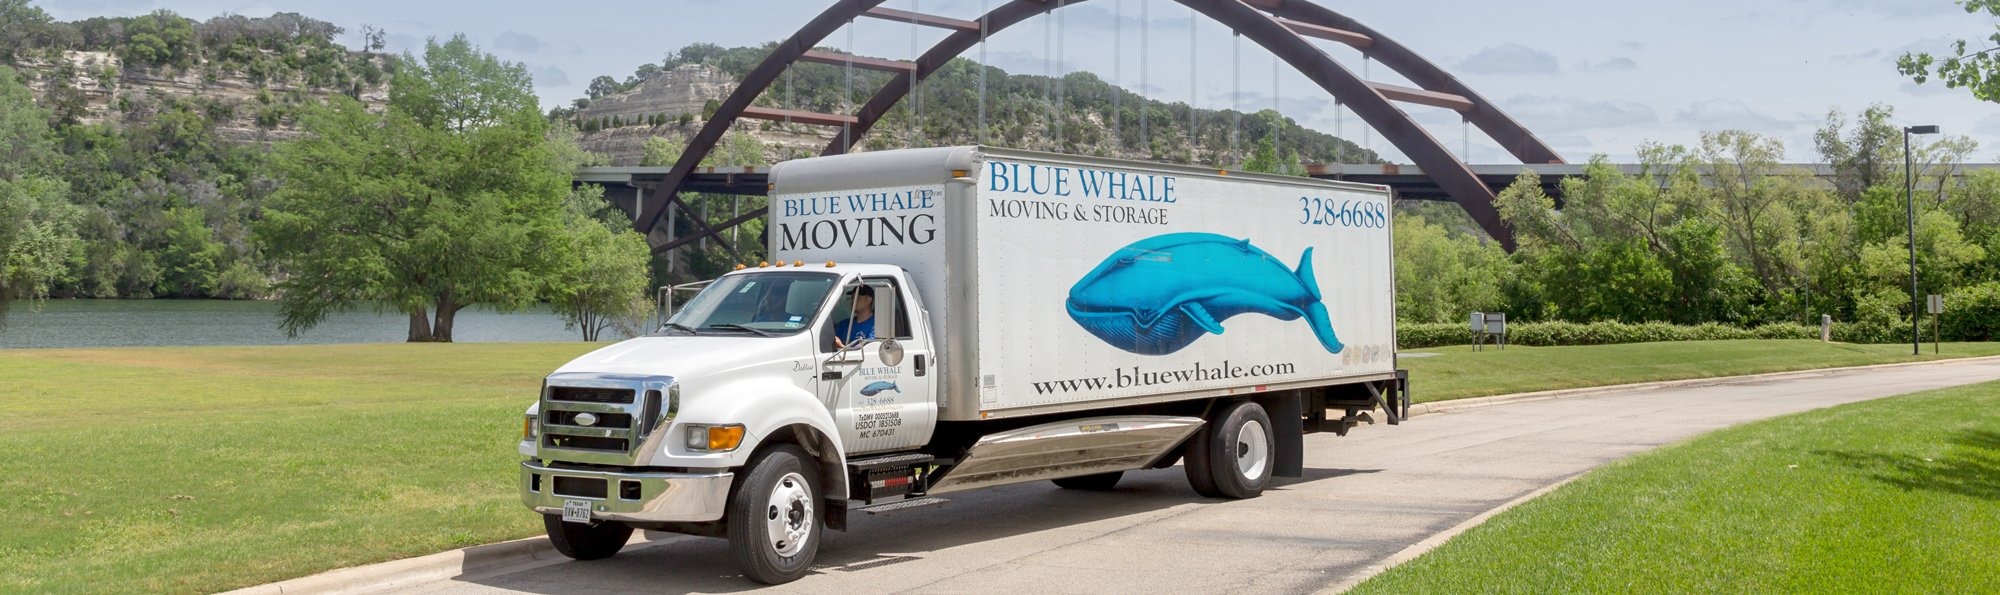 austin-moving-company-blue-whale